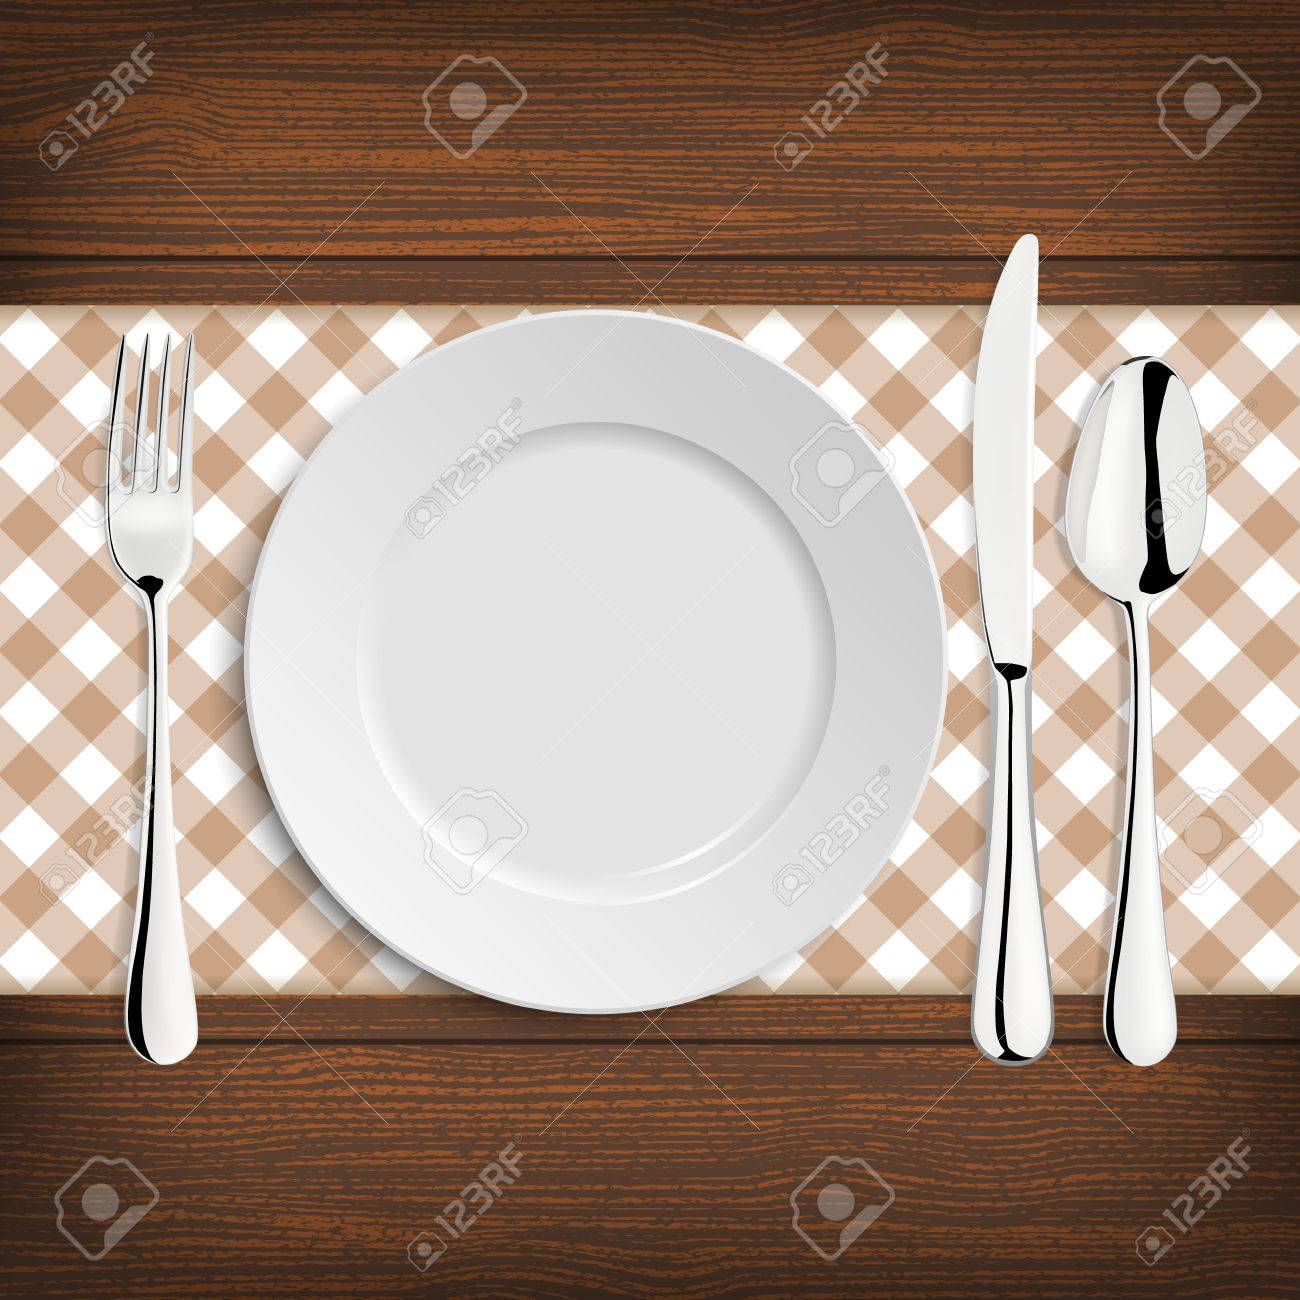 Plate with spoon, knife and fork on a wood table. - 43204198